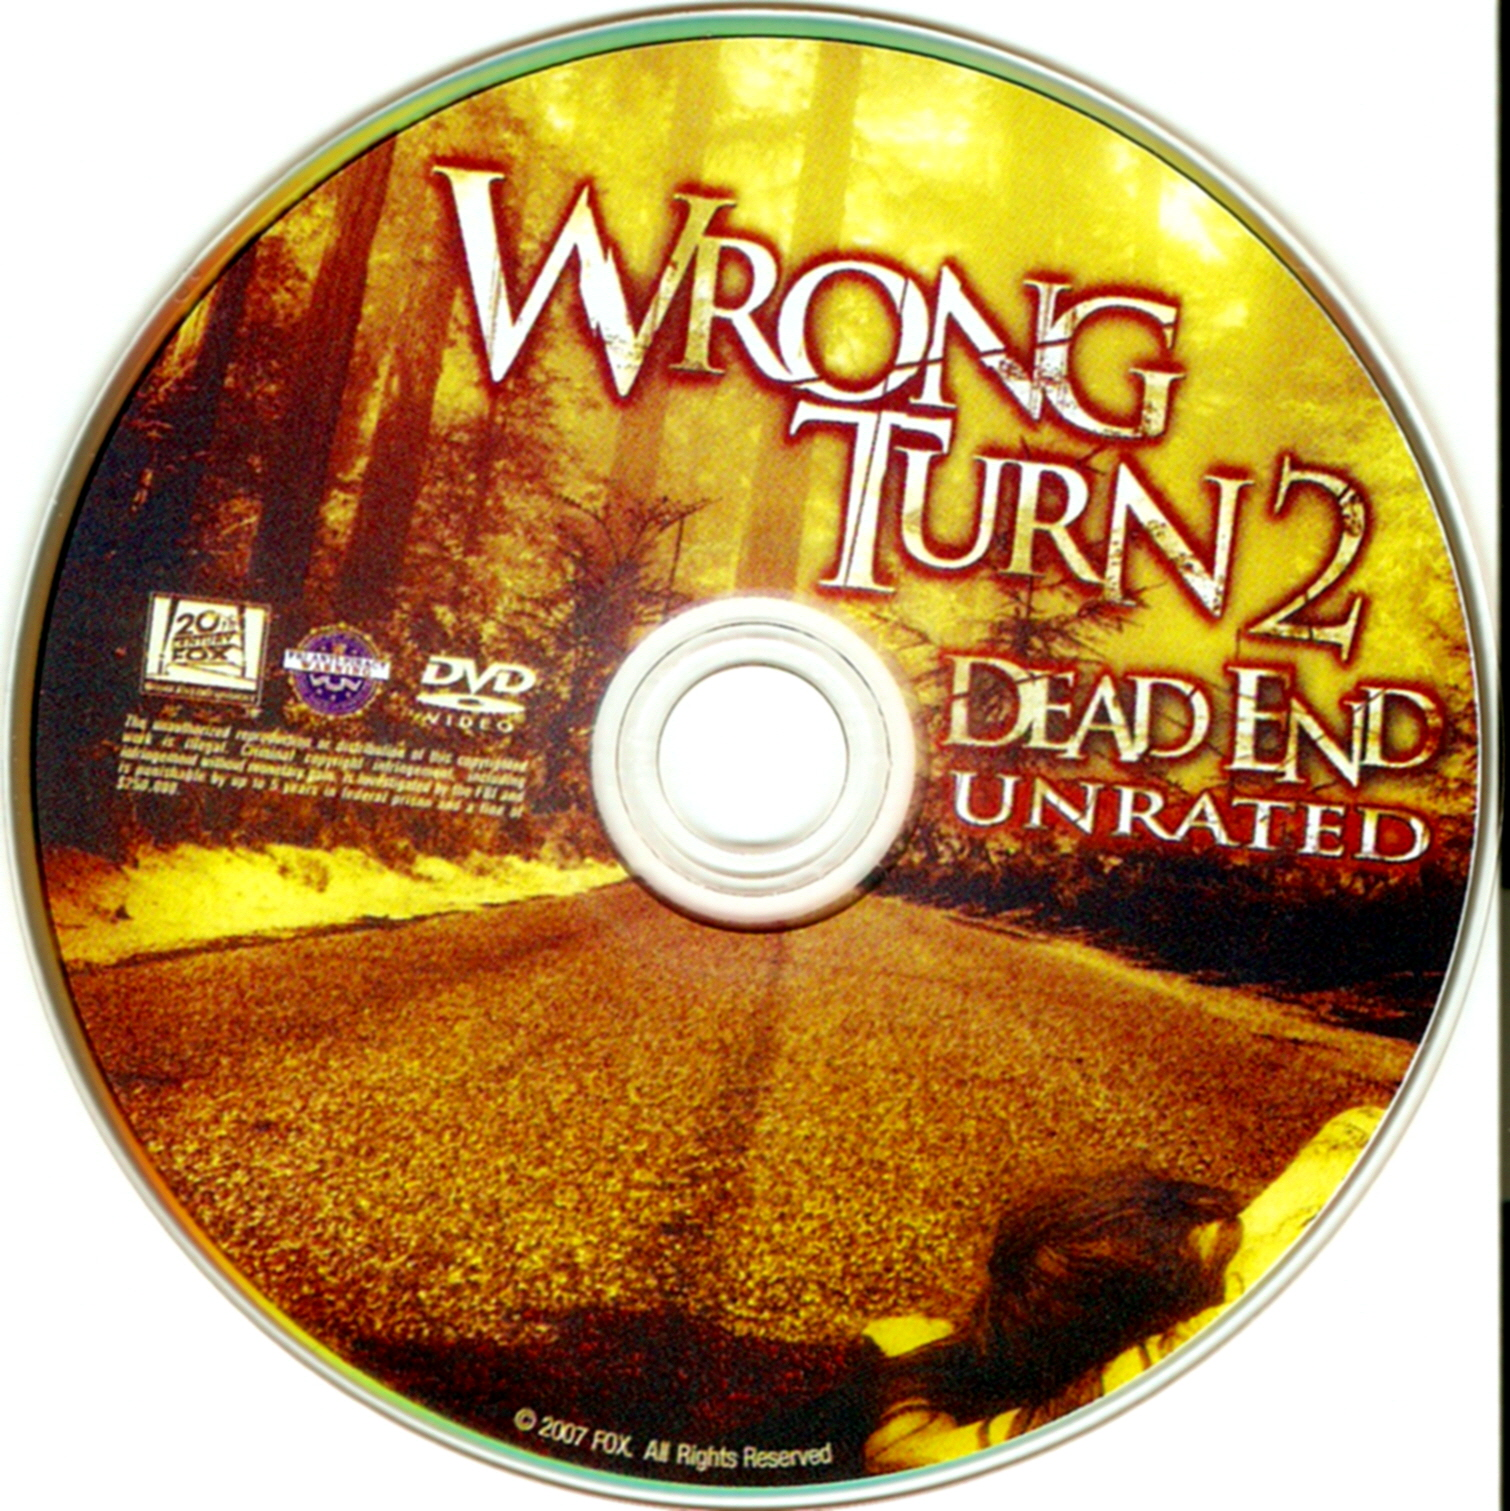 covers box sk wrong turn 2 unrated high quality dvd blueray movie. Black Bedroom Furniture Sets. Home Design Ideas